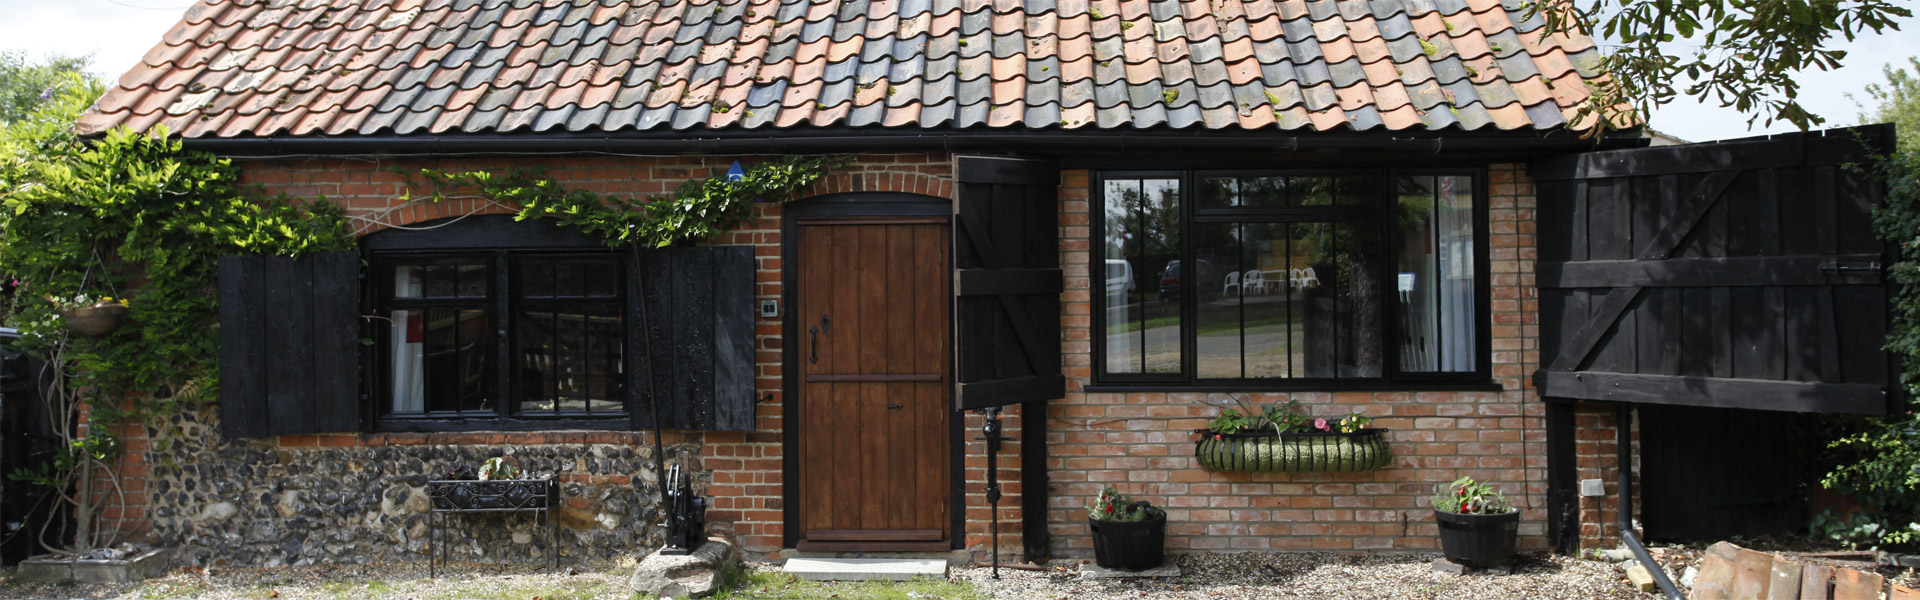 Flempton Forge Holiday Cottage, Suffolk